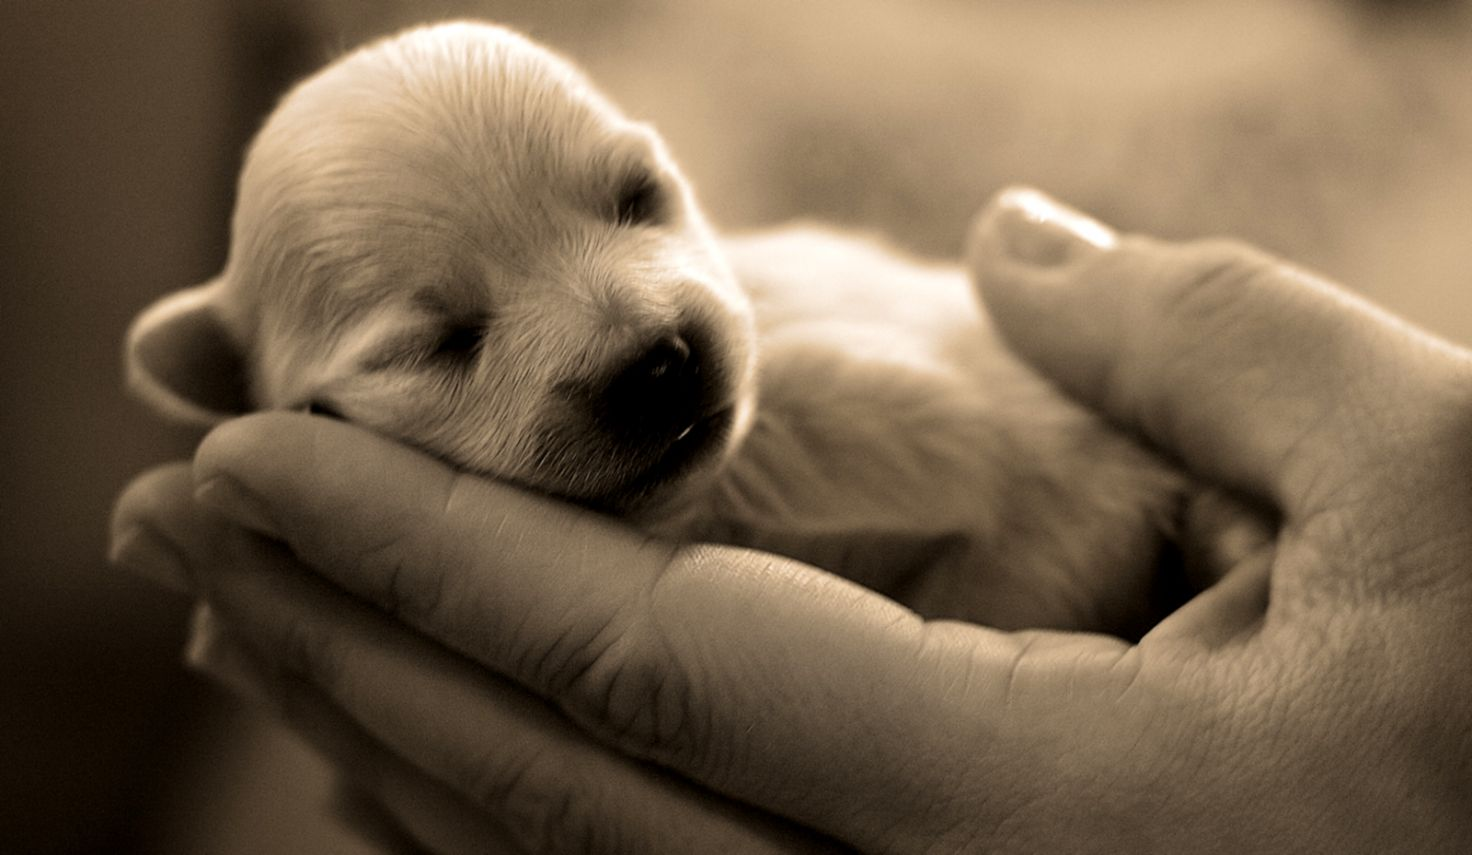 Cute puppy pictures wallpaper free download